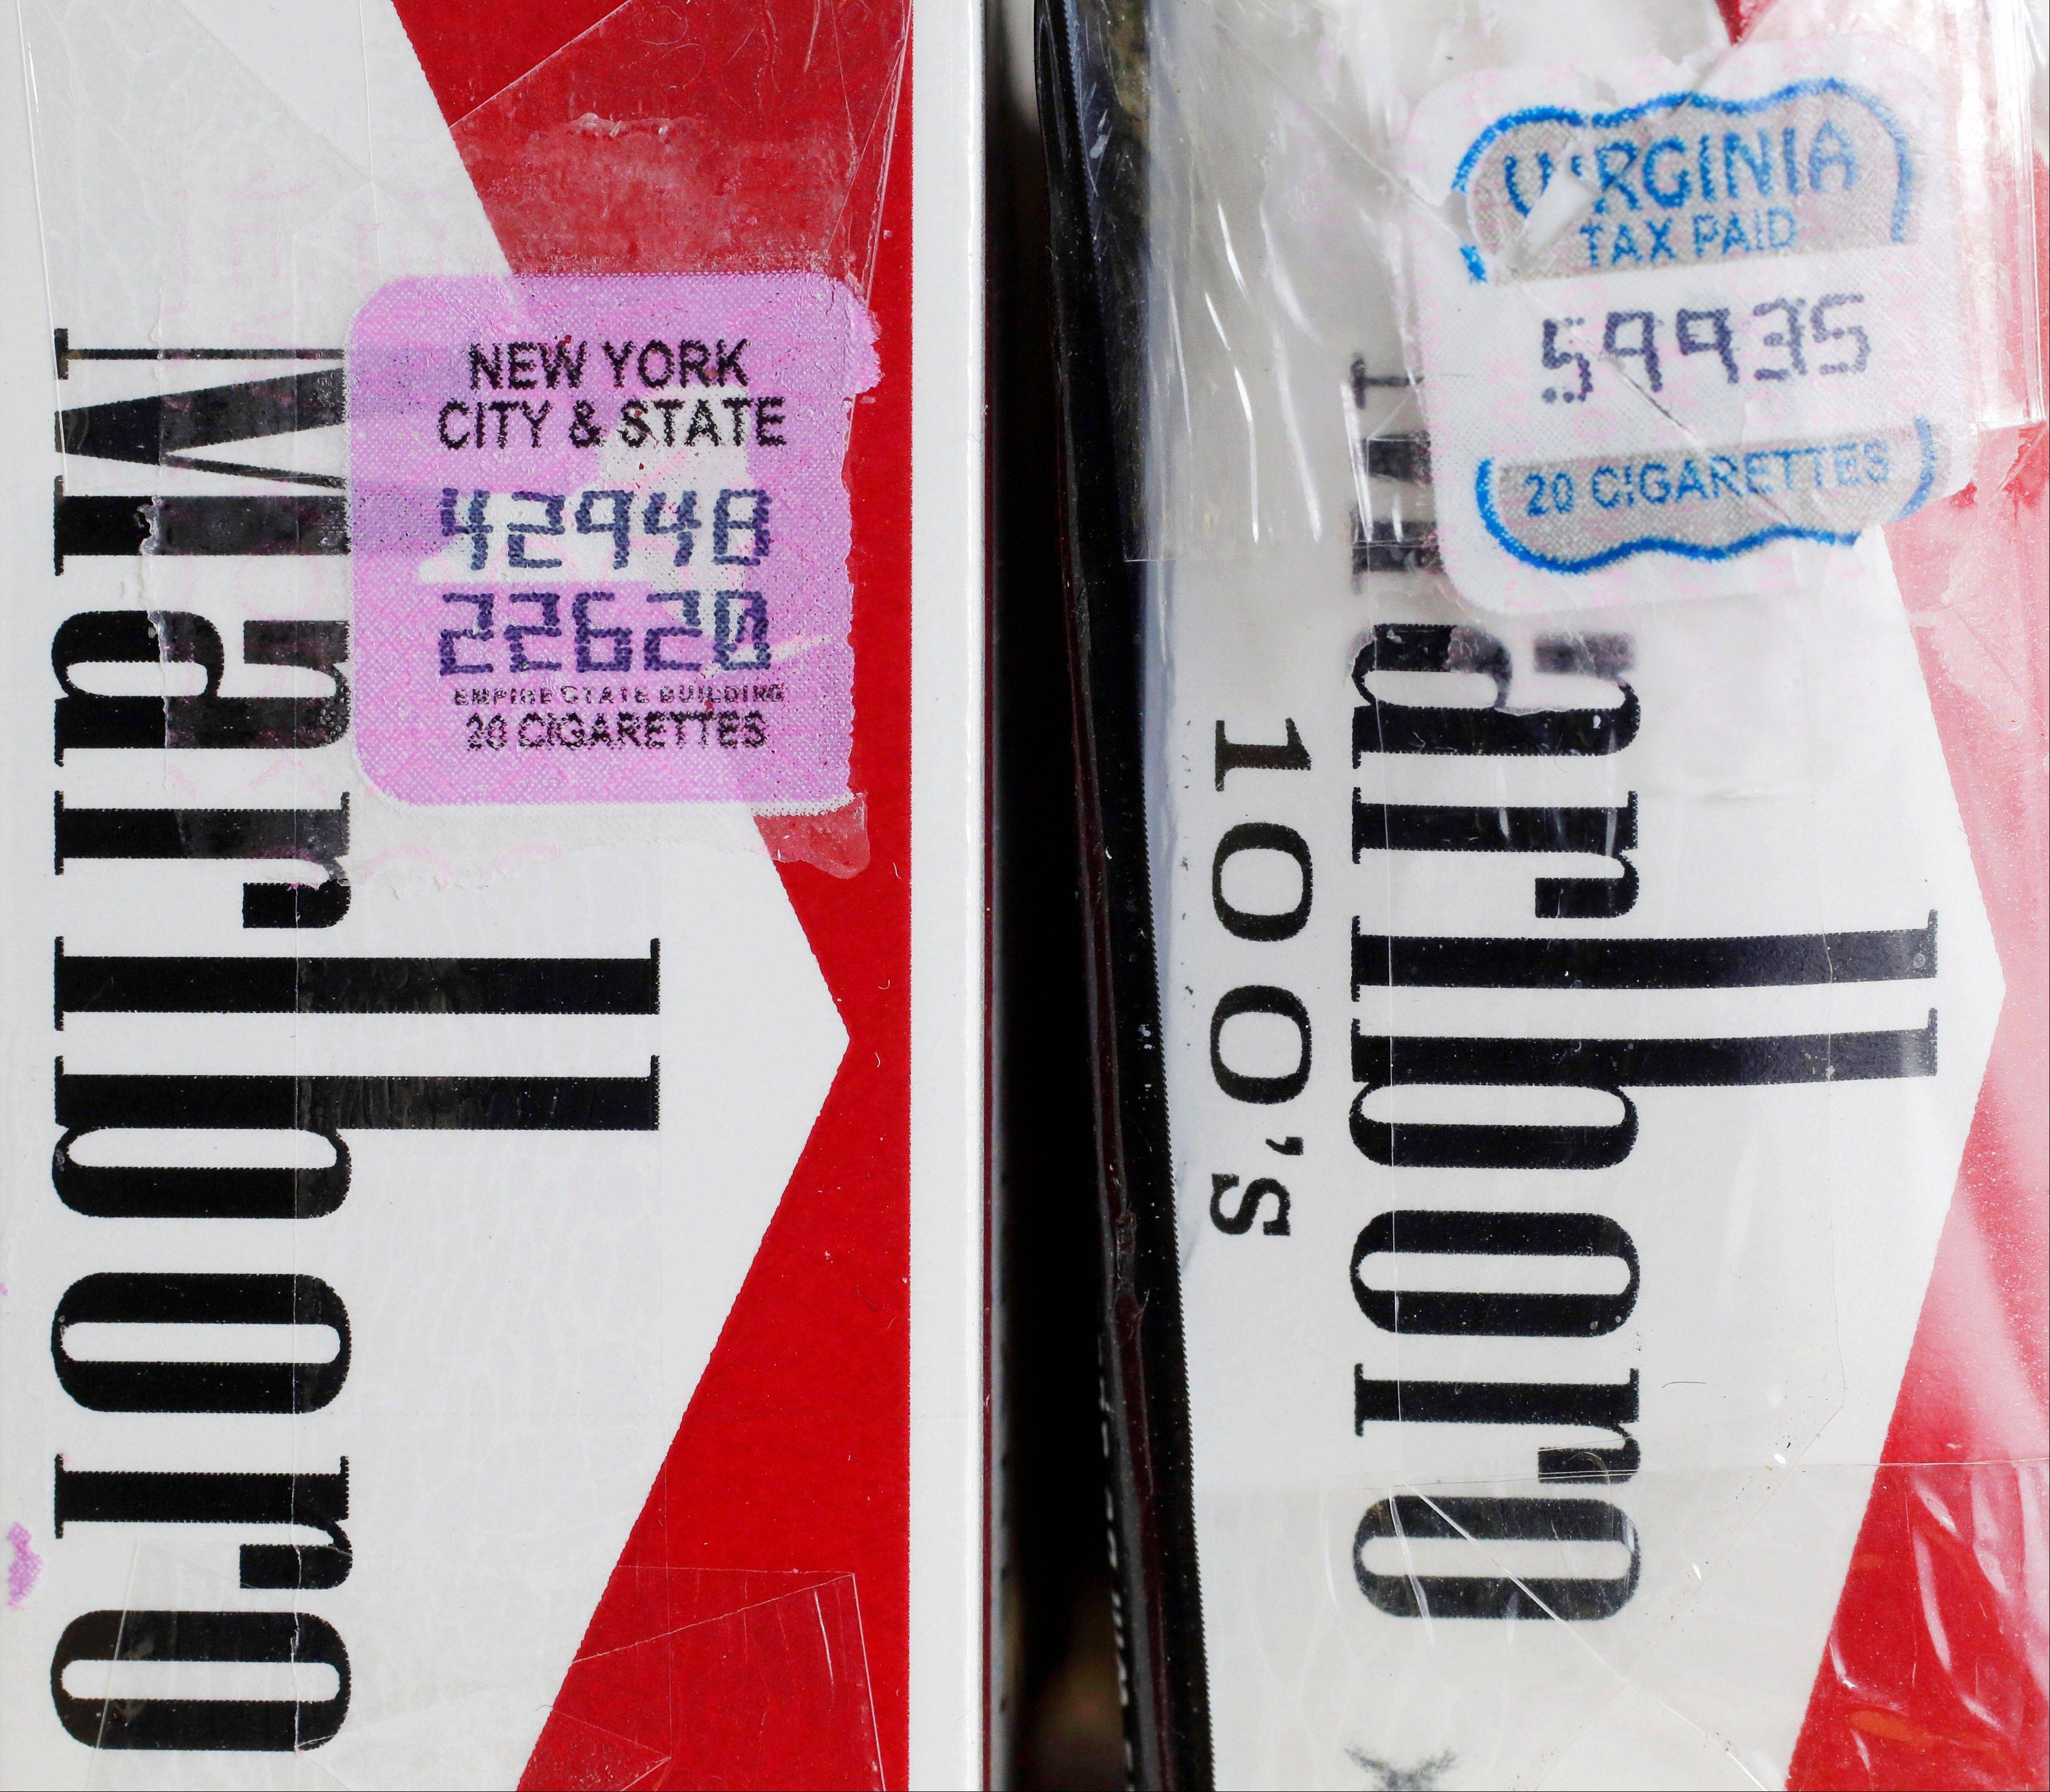 Two packs of Marlboro cigarettes are seen here, the one on the left with a New York City and state tax stamp, and on the right a Virginia tax stamp. New York City�s war on smoking is being undercut by light penalties for merchants caught selling cheap cigarettes smuggled in from low-tax states.